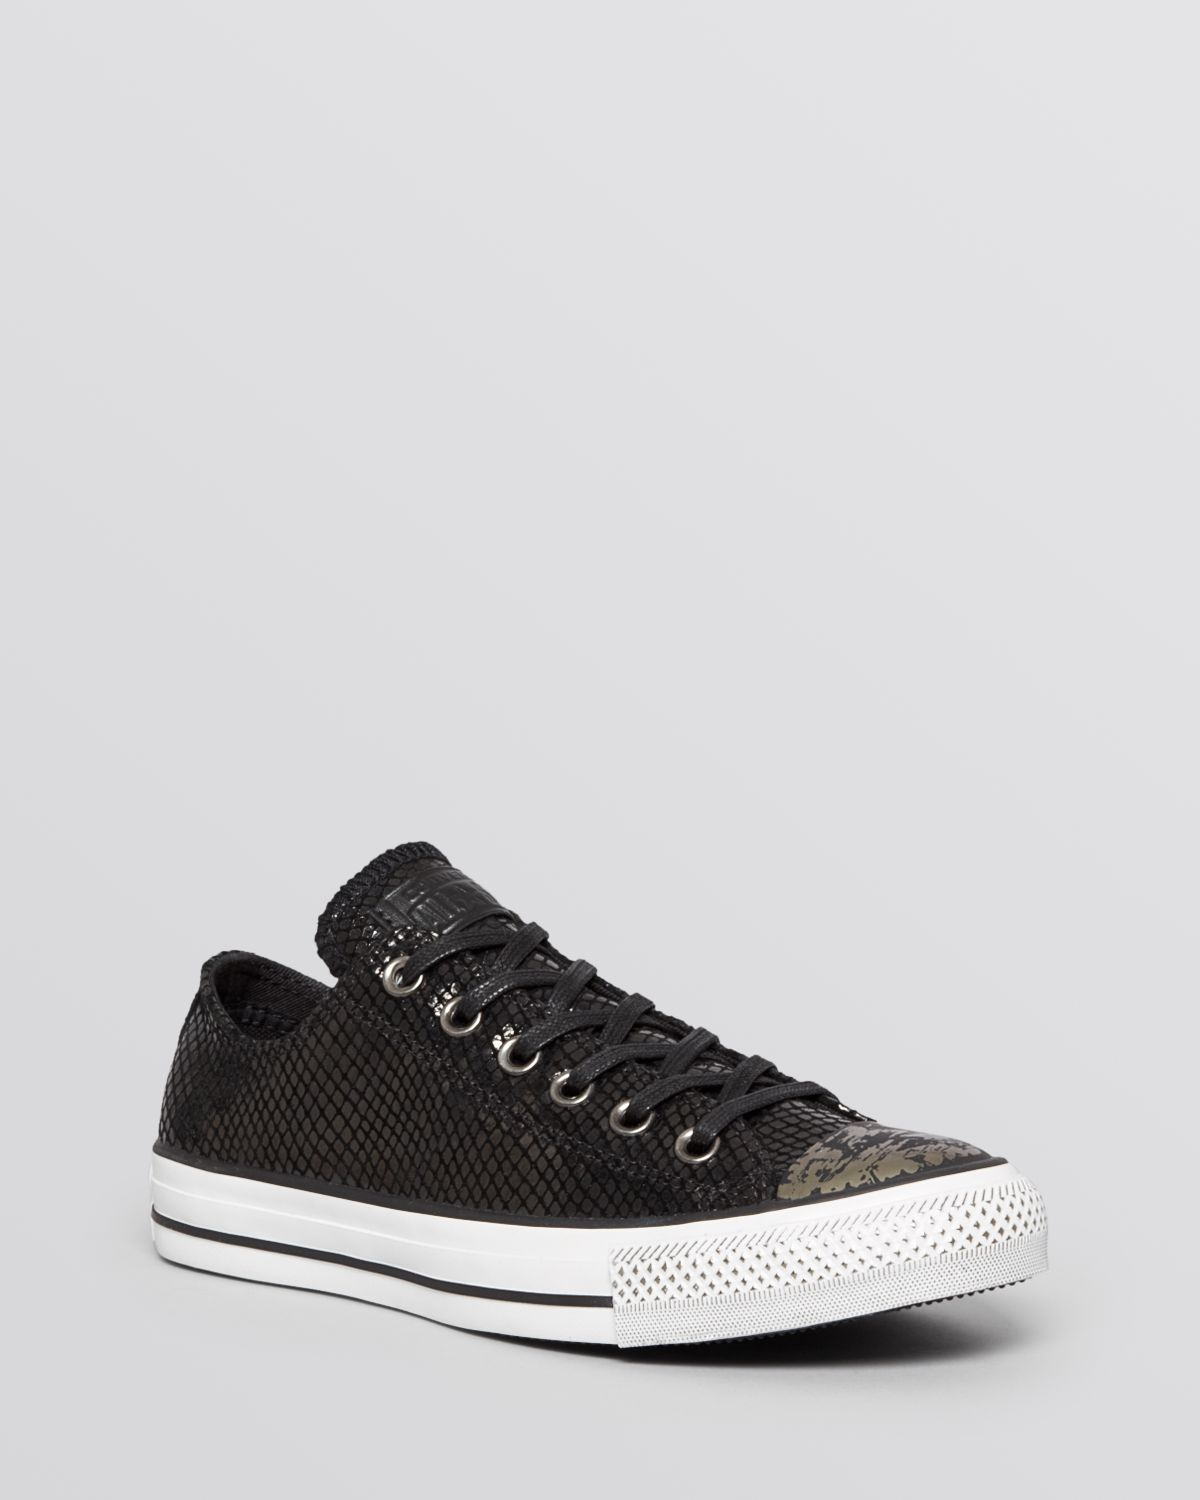 Converse Flat Lace Up Sneakers Low Top Metallic In Black